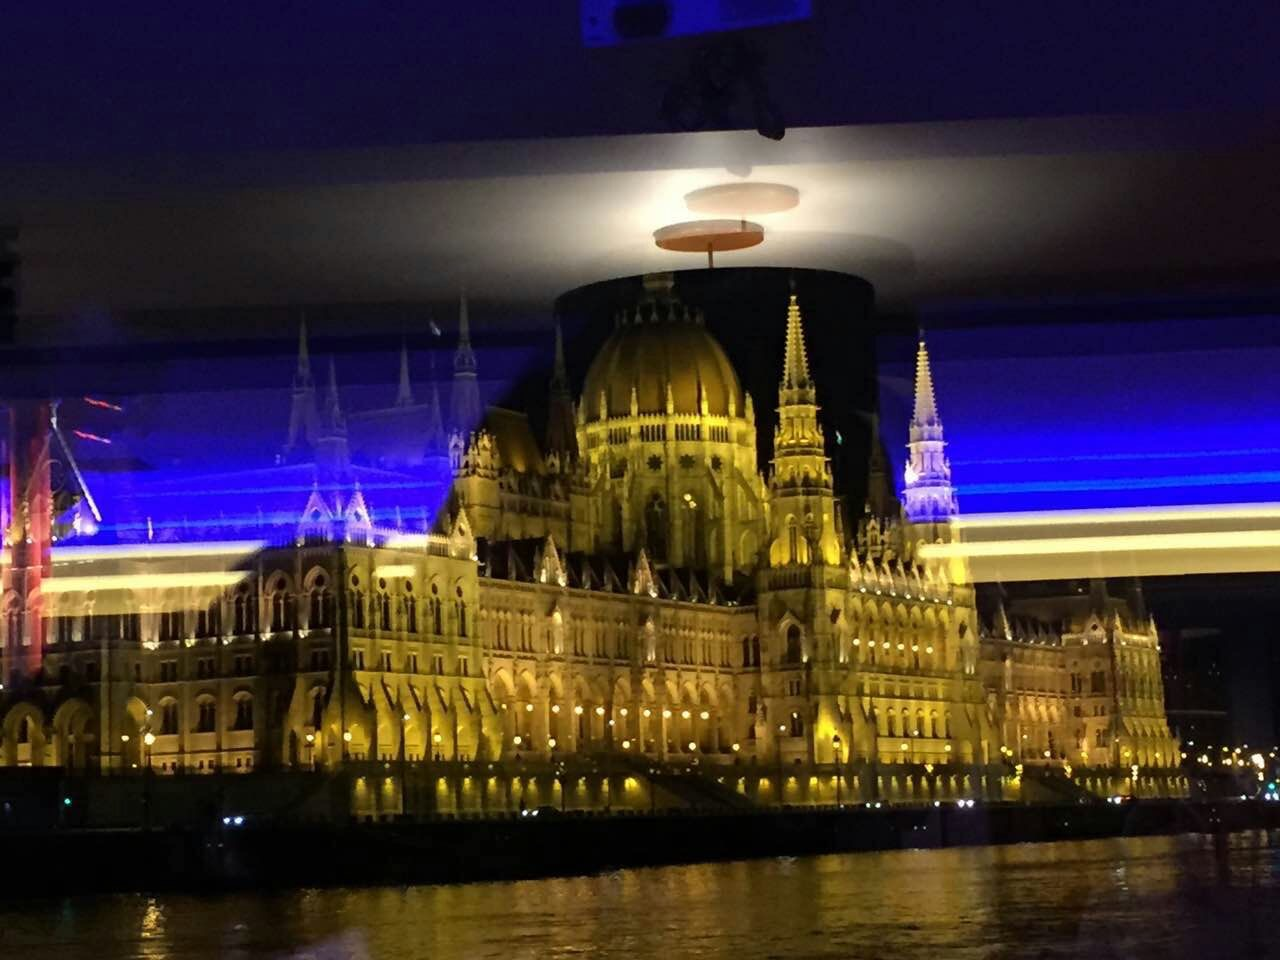 An artsy picture of Parliament